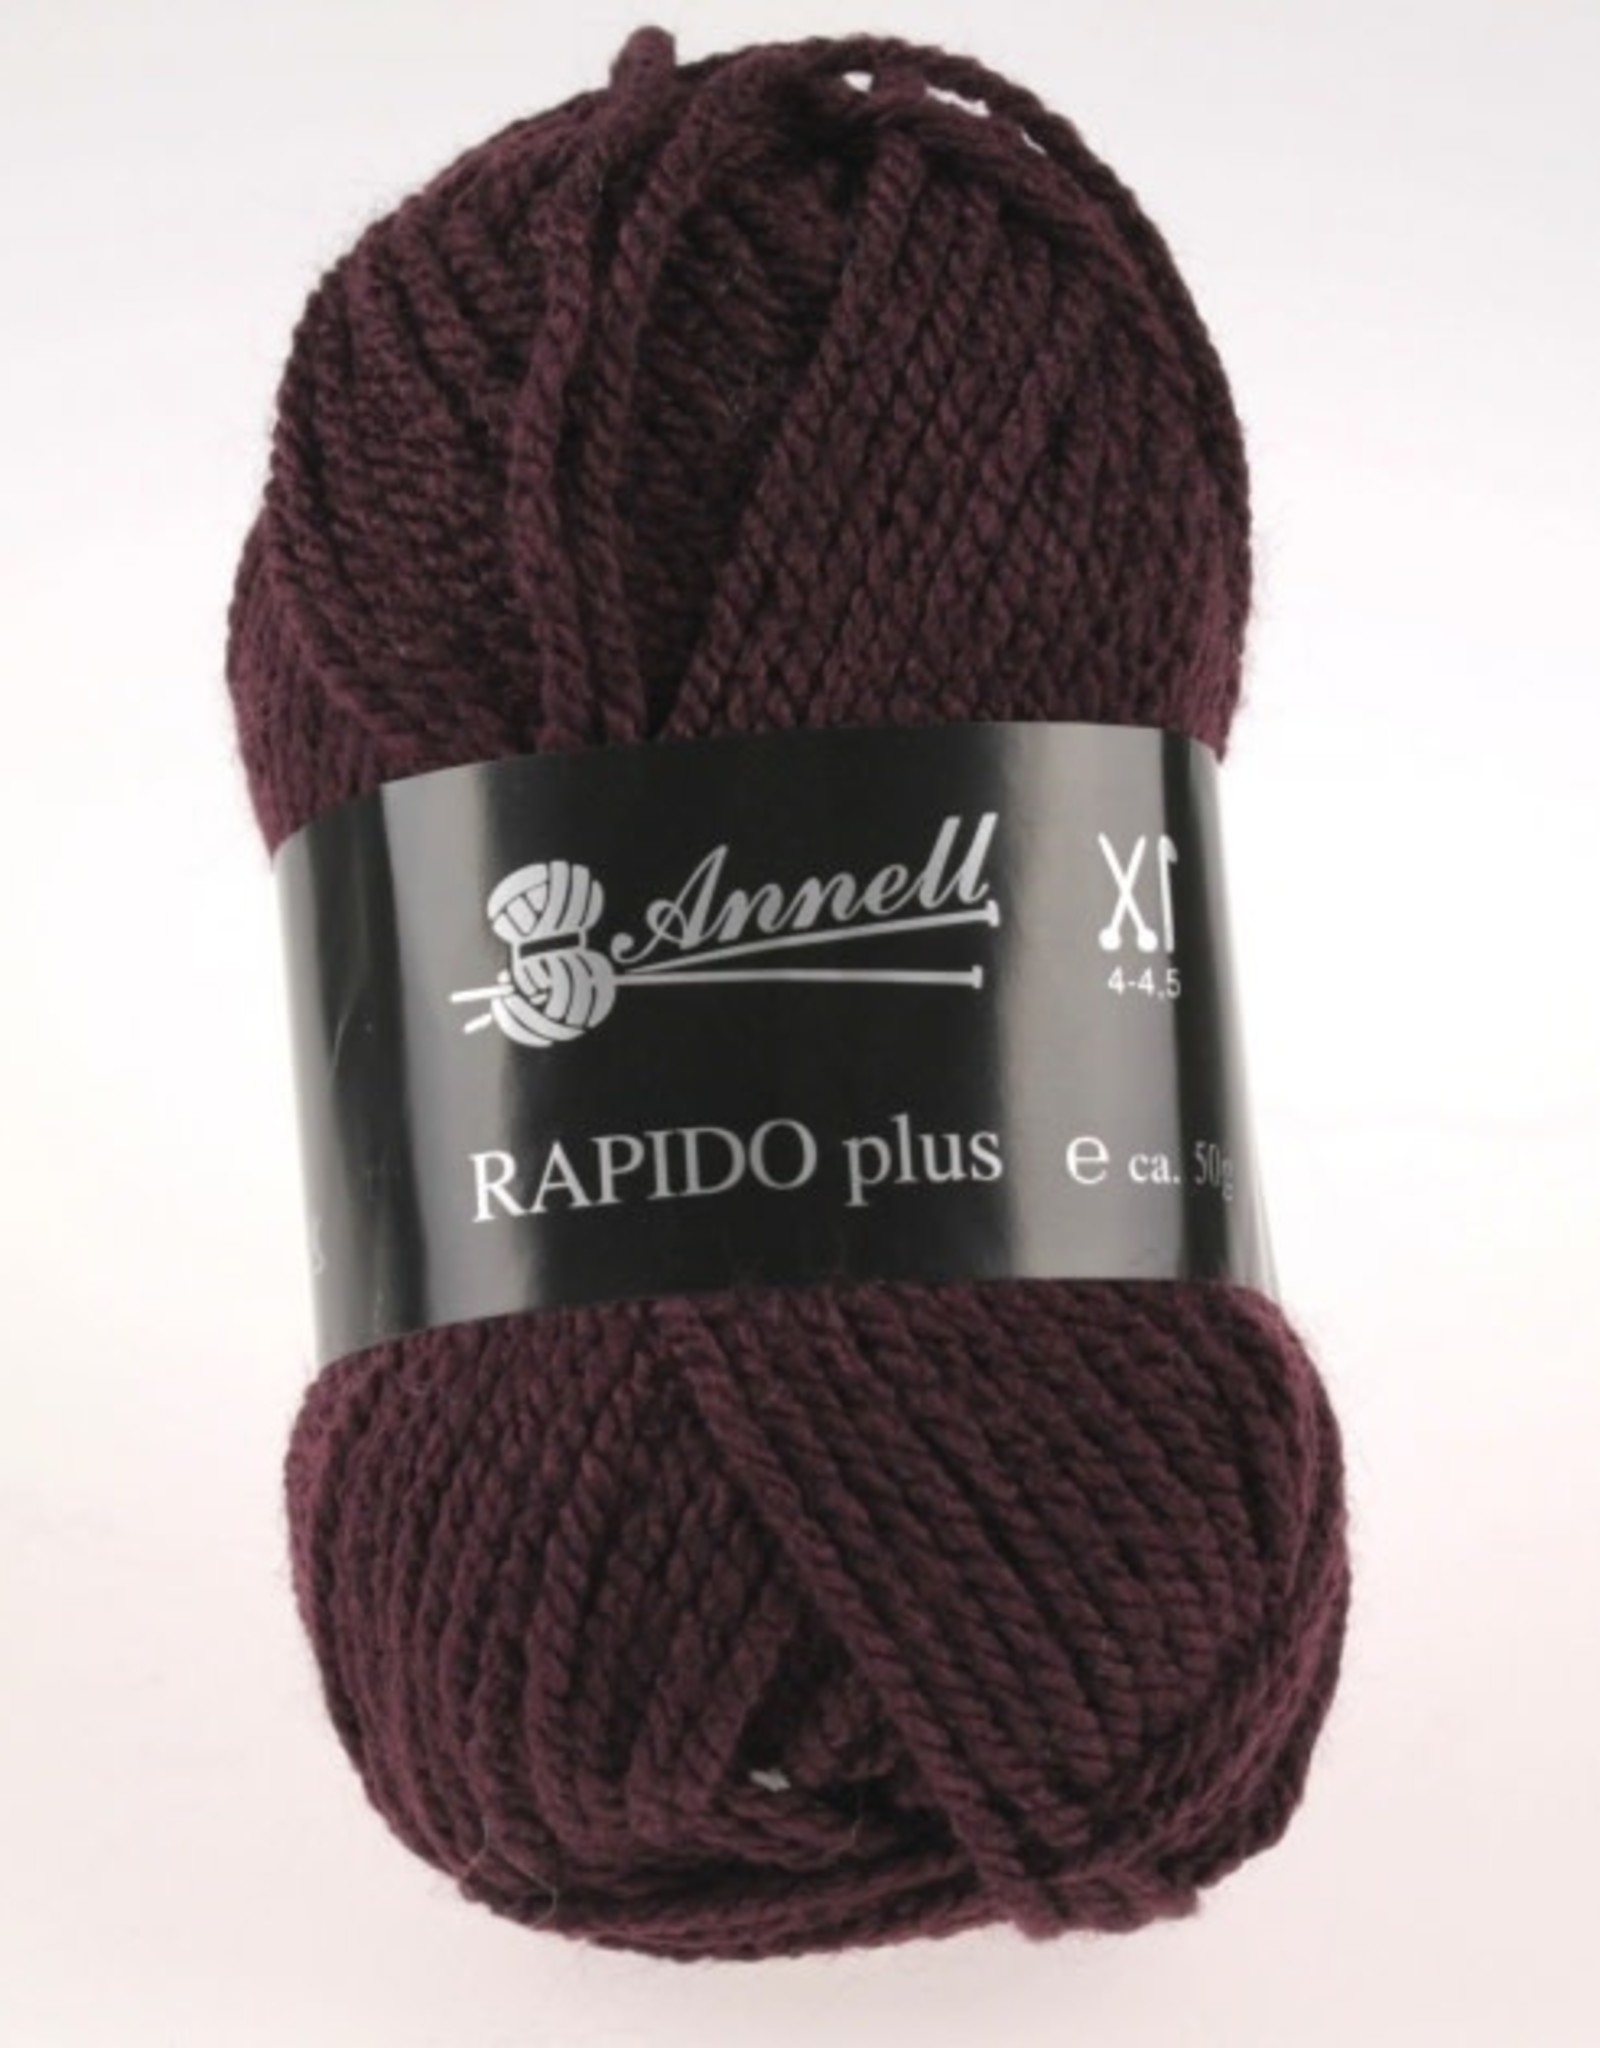 Annell Annell rapido plus 9202